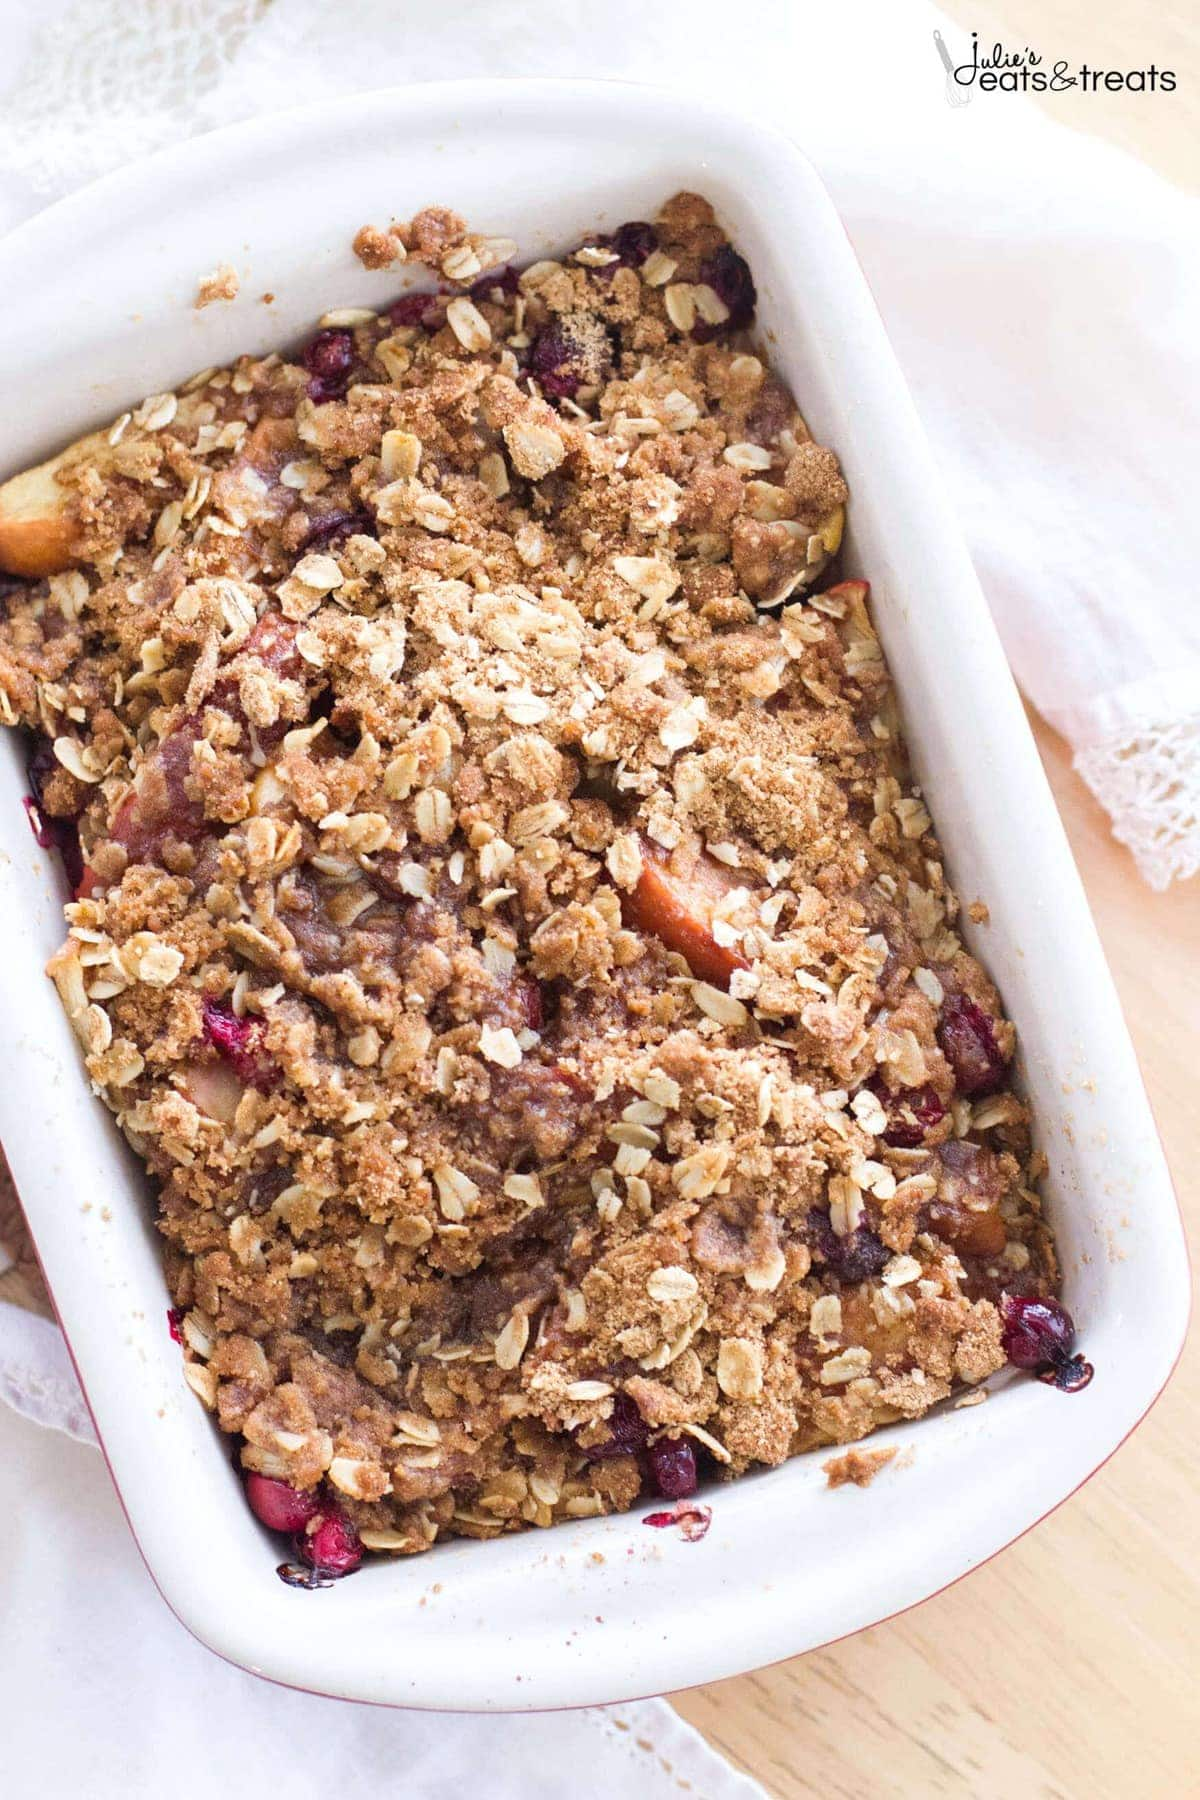 Apple Cranberry Crisp is filled with sweet apples and fresh cranberries, and is topped with the best brown sugar cinnamon crumble!